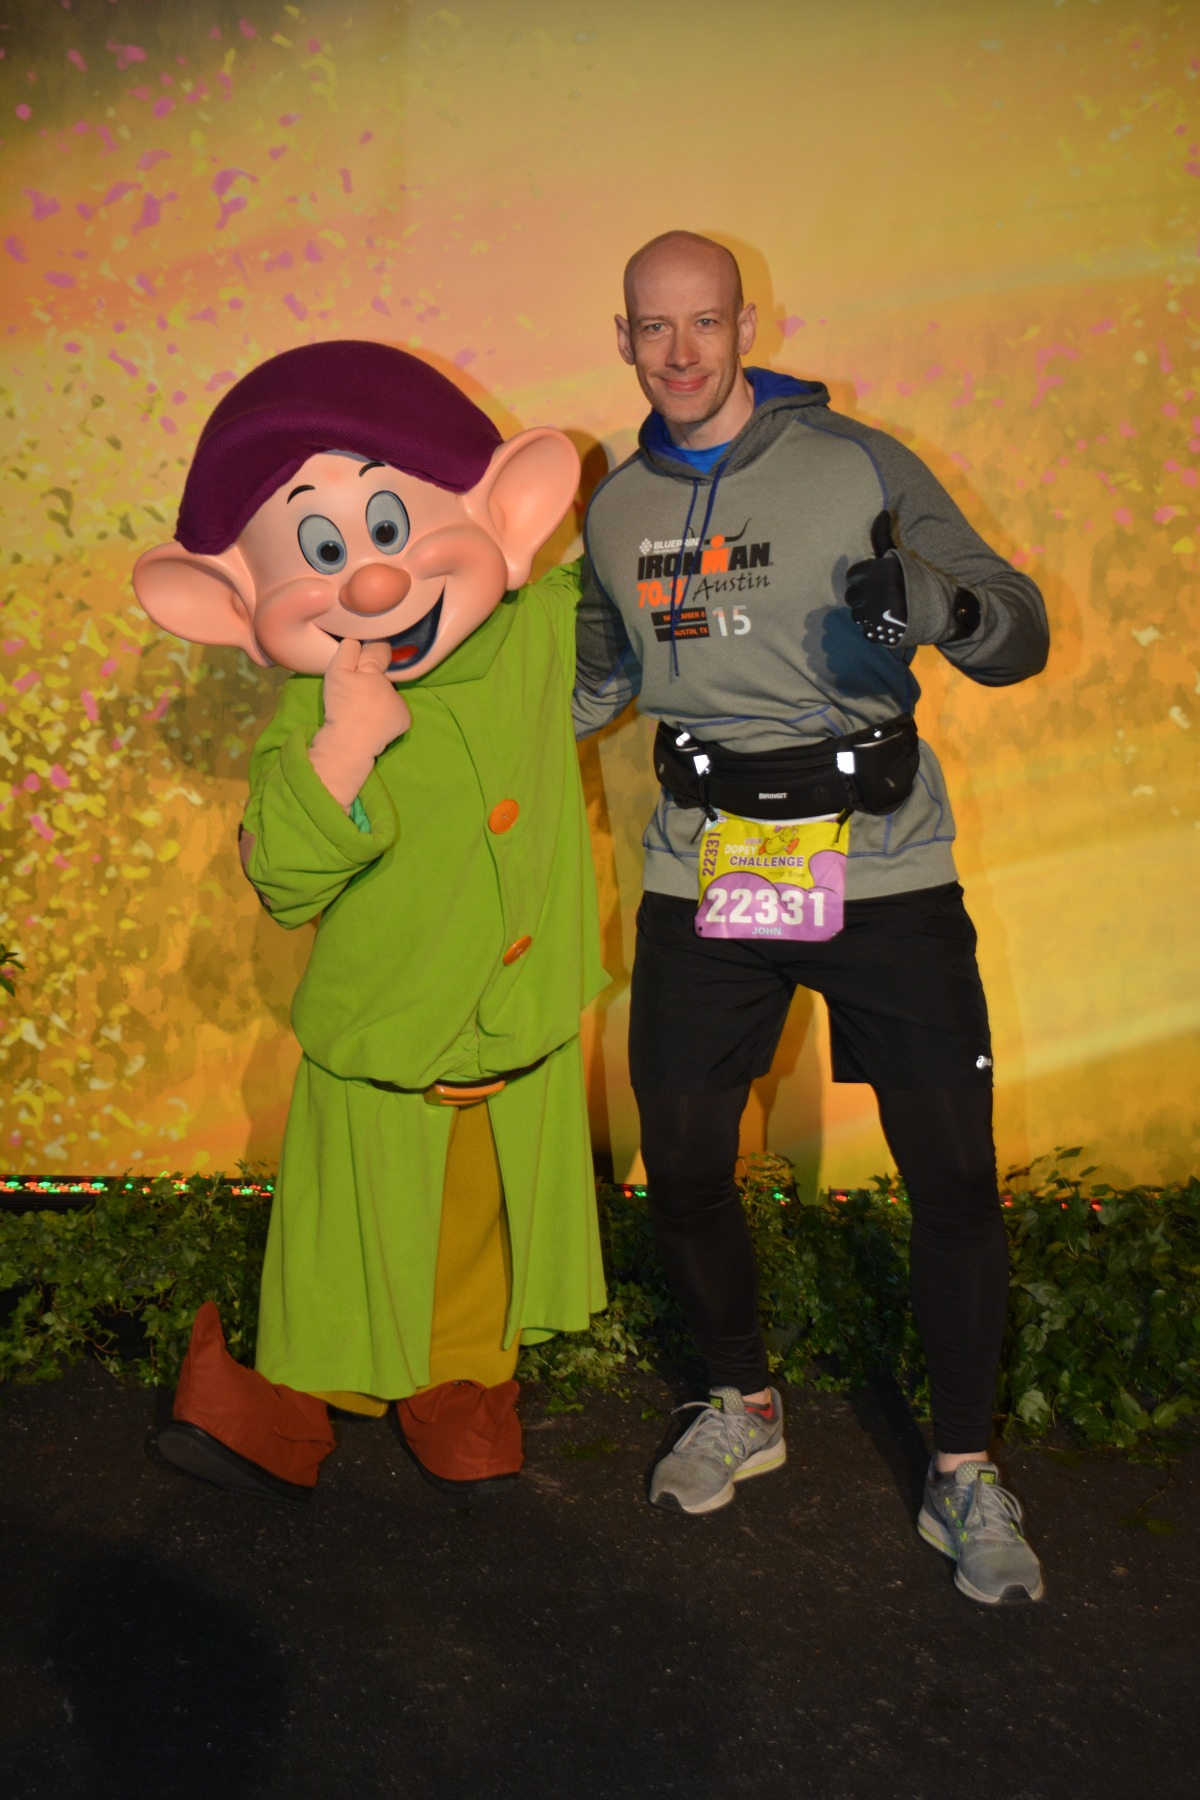 Walt Disney World 2018 Dopey Challenge Race Report